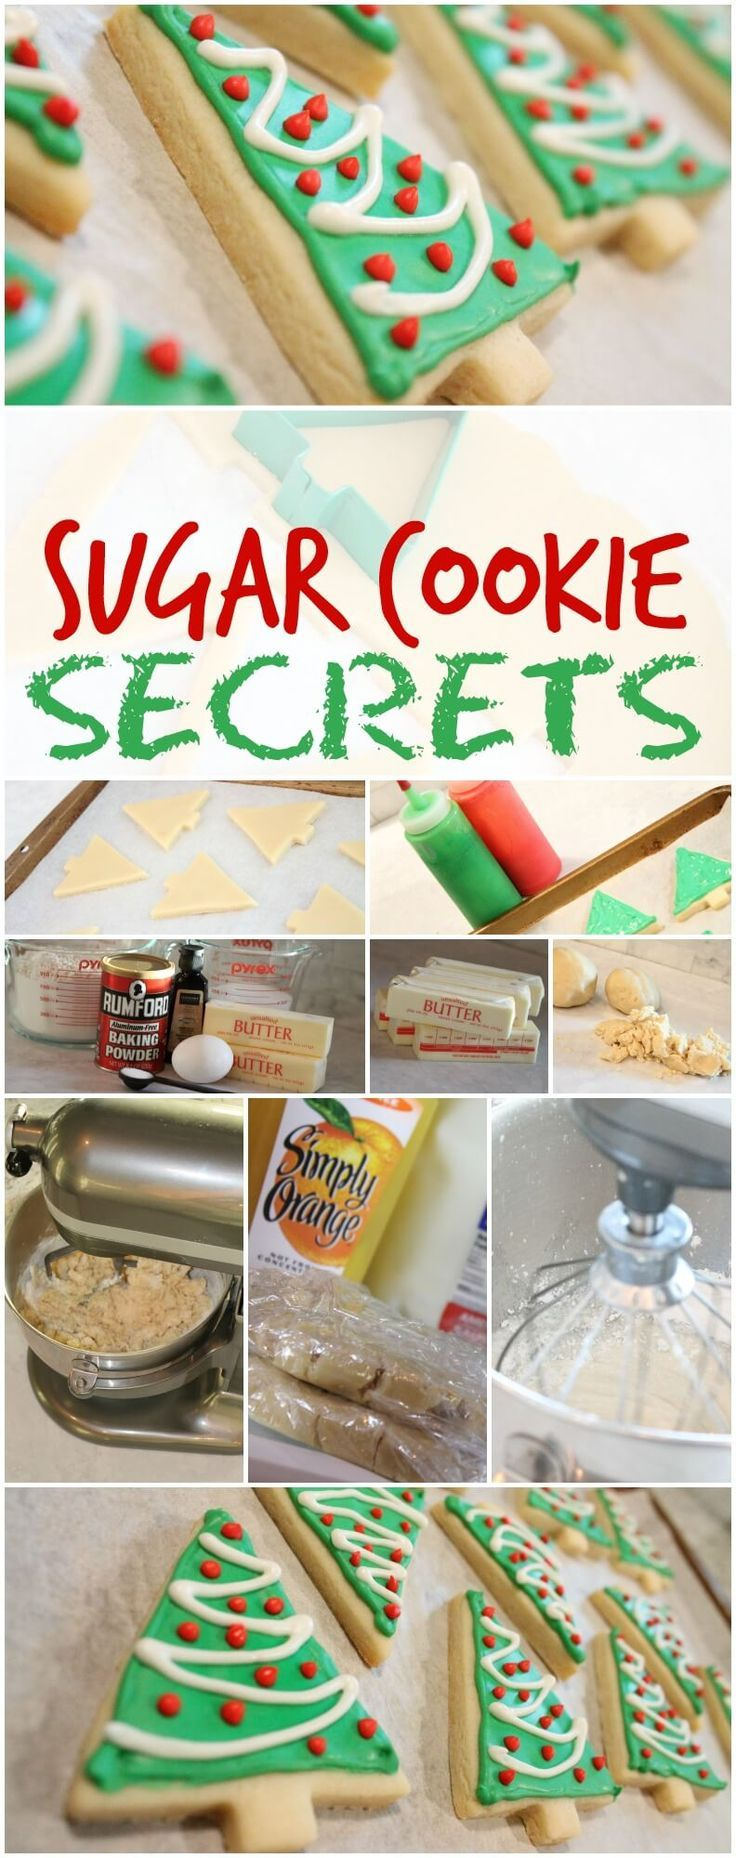 Sugar Cookie Secrets! How to get perfect Sugar Cookies to decorate for Christmas! #sugarcookies